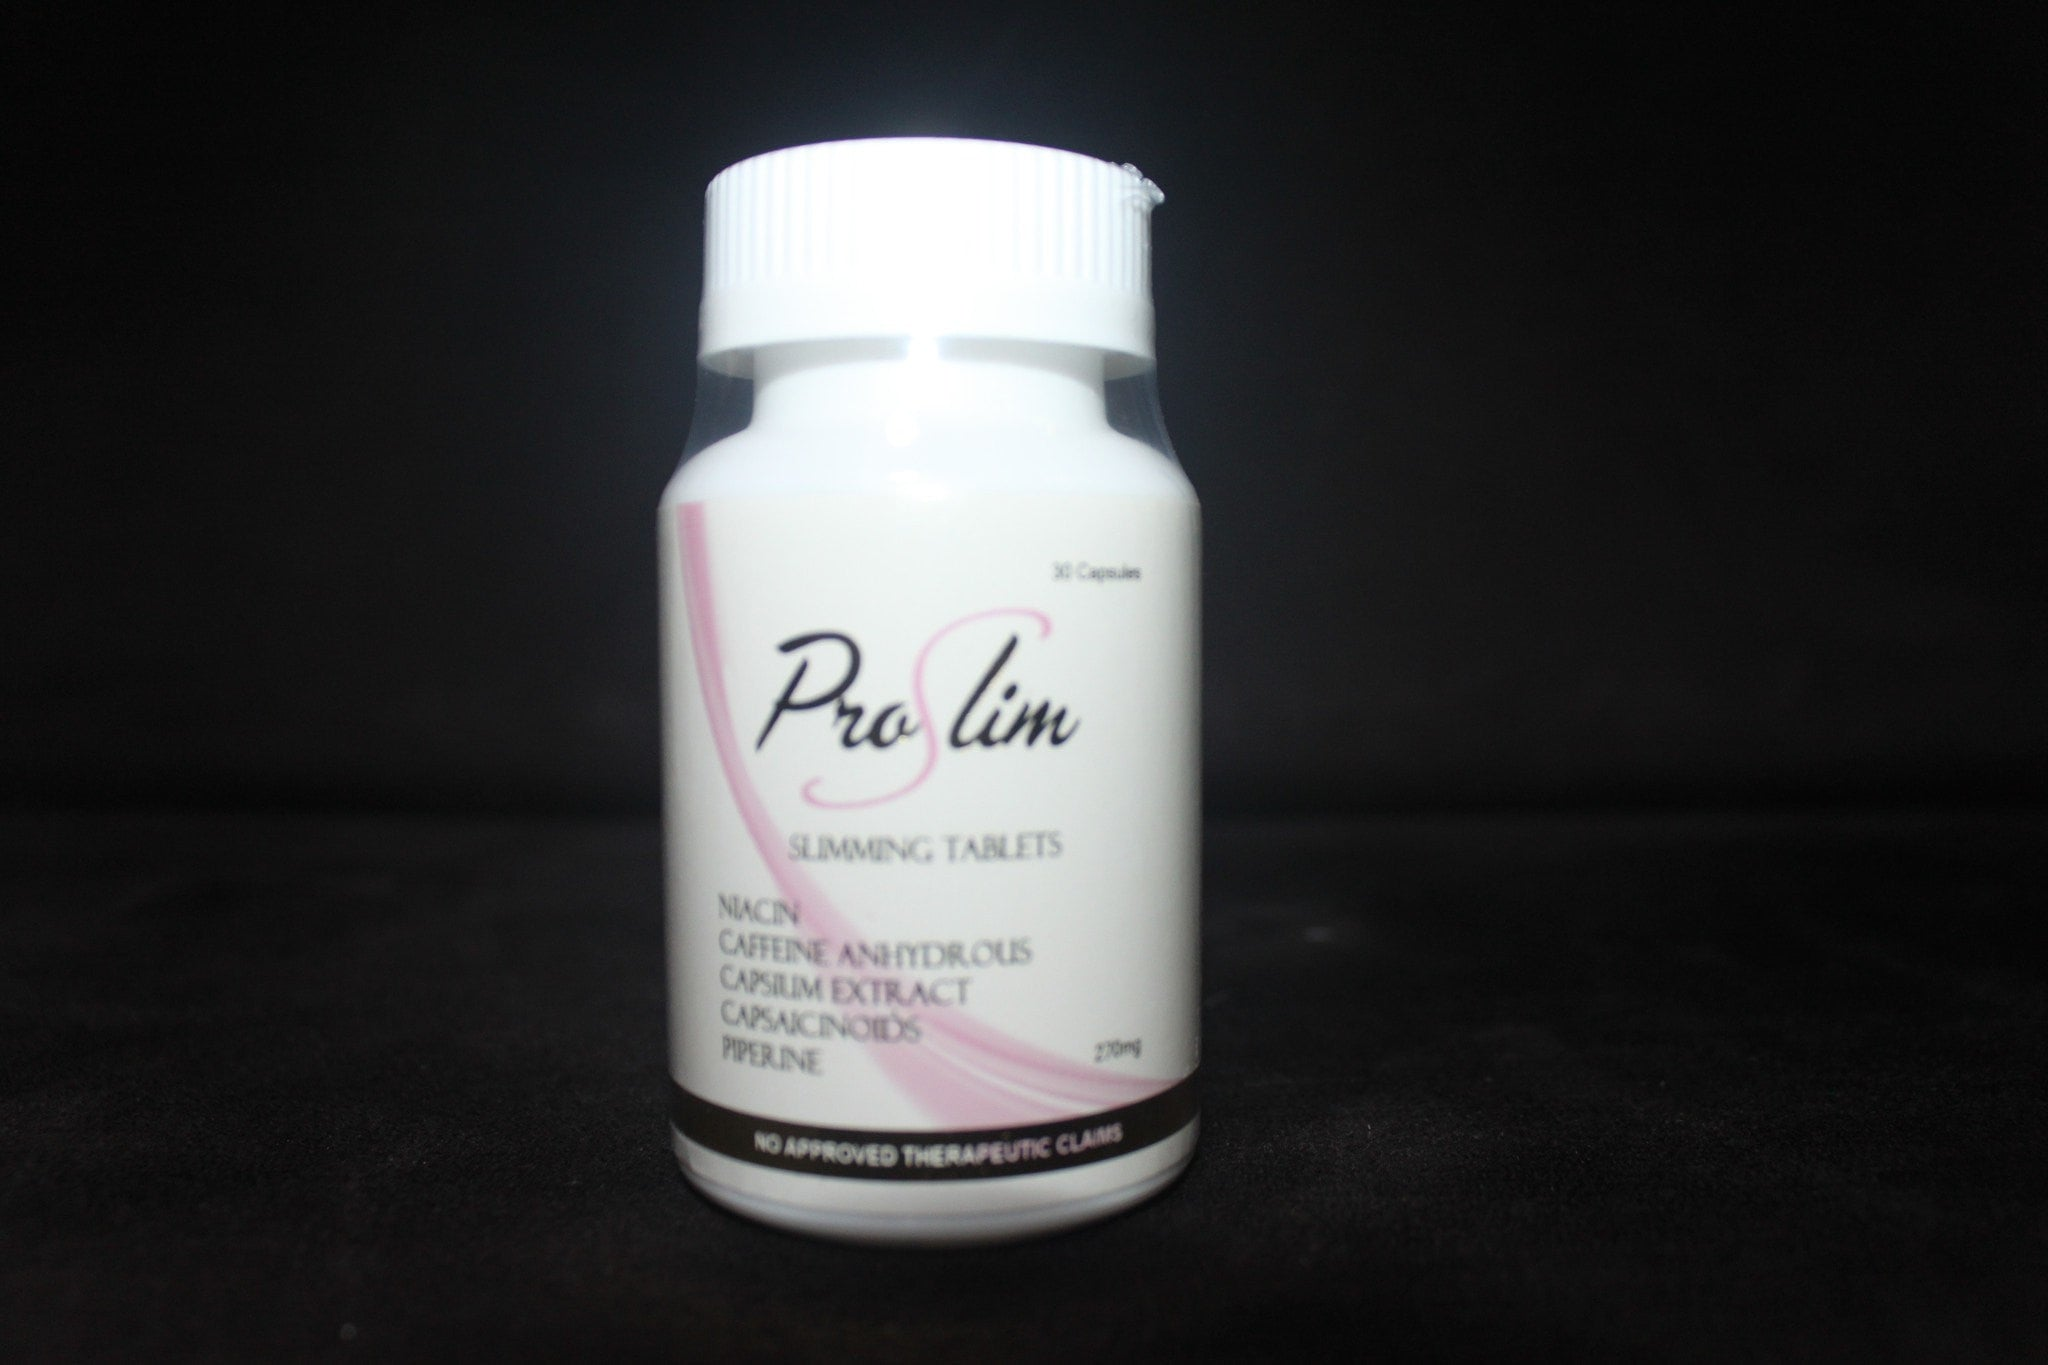 Pro Slim Slimming Tablets - Simple Mello